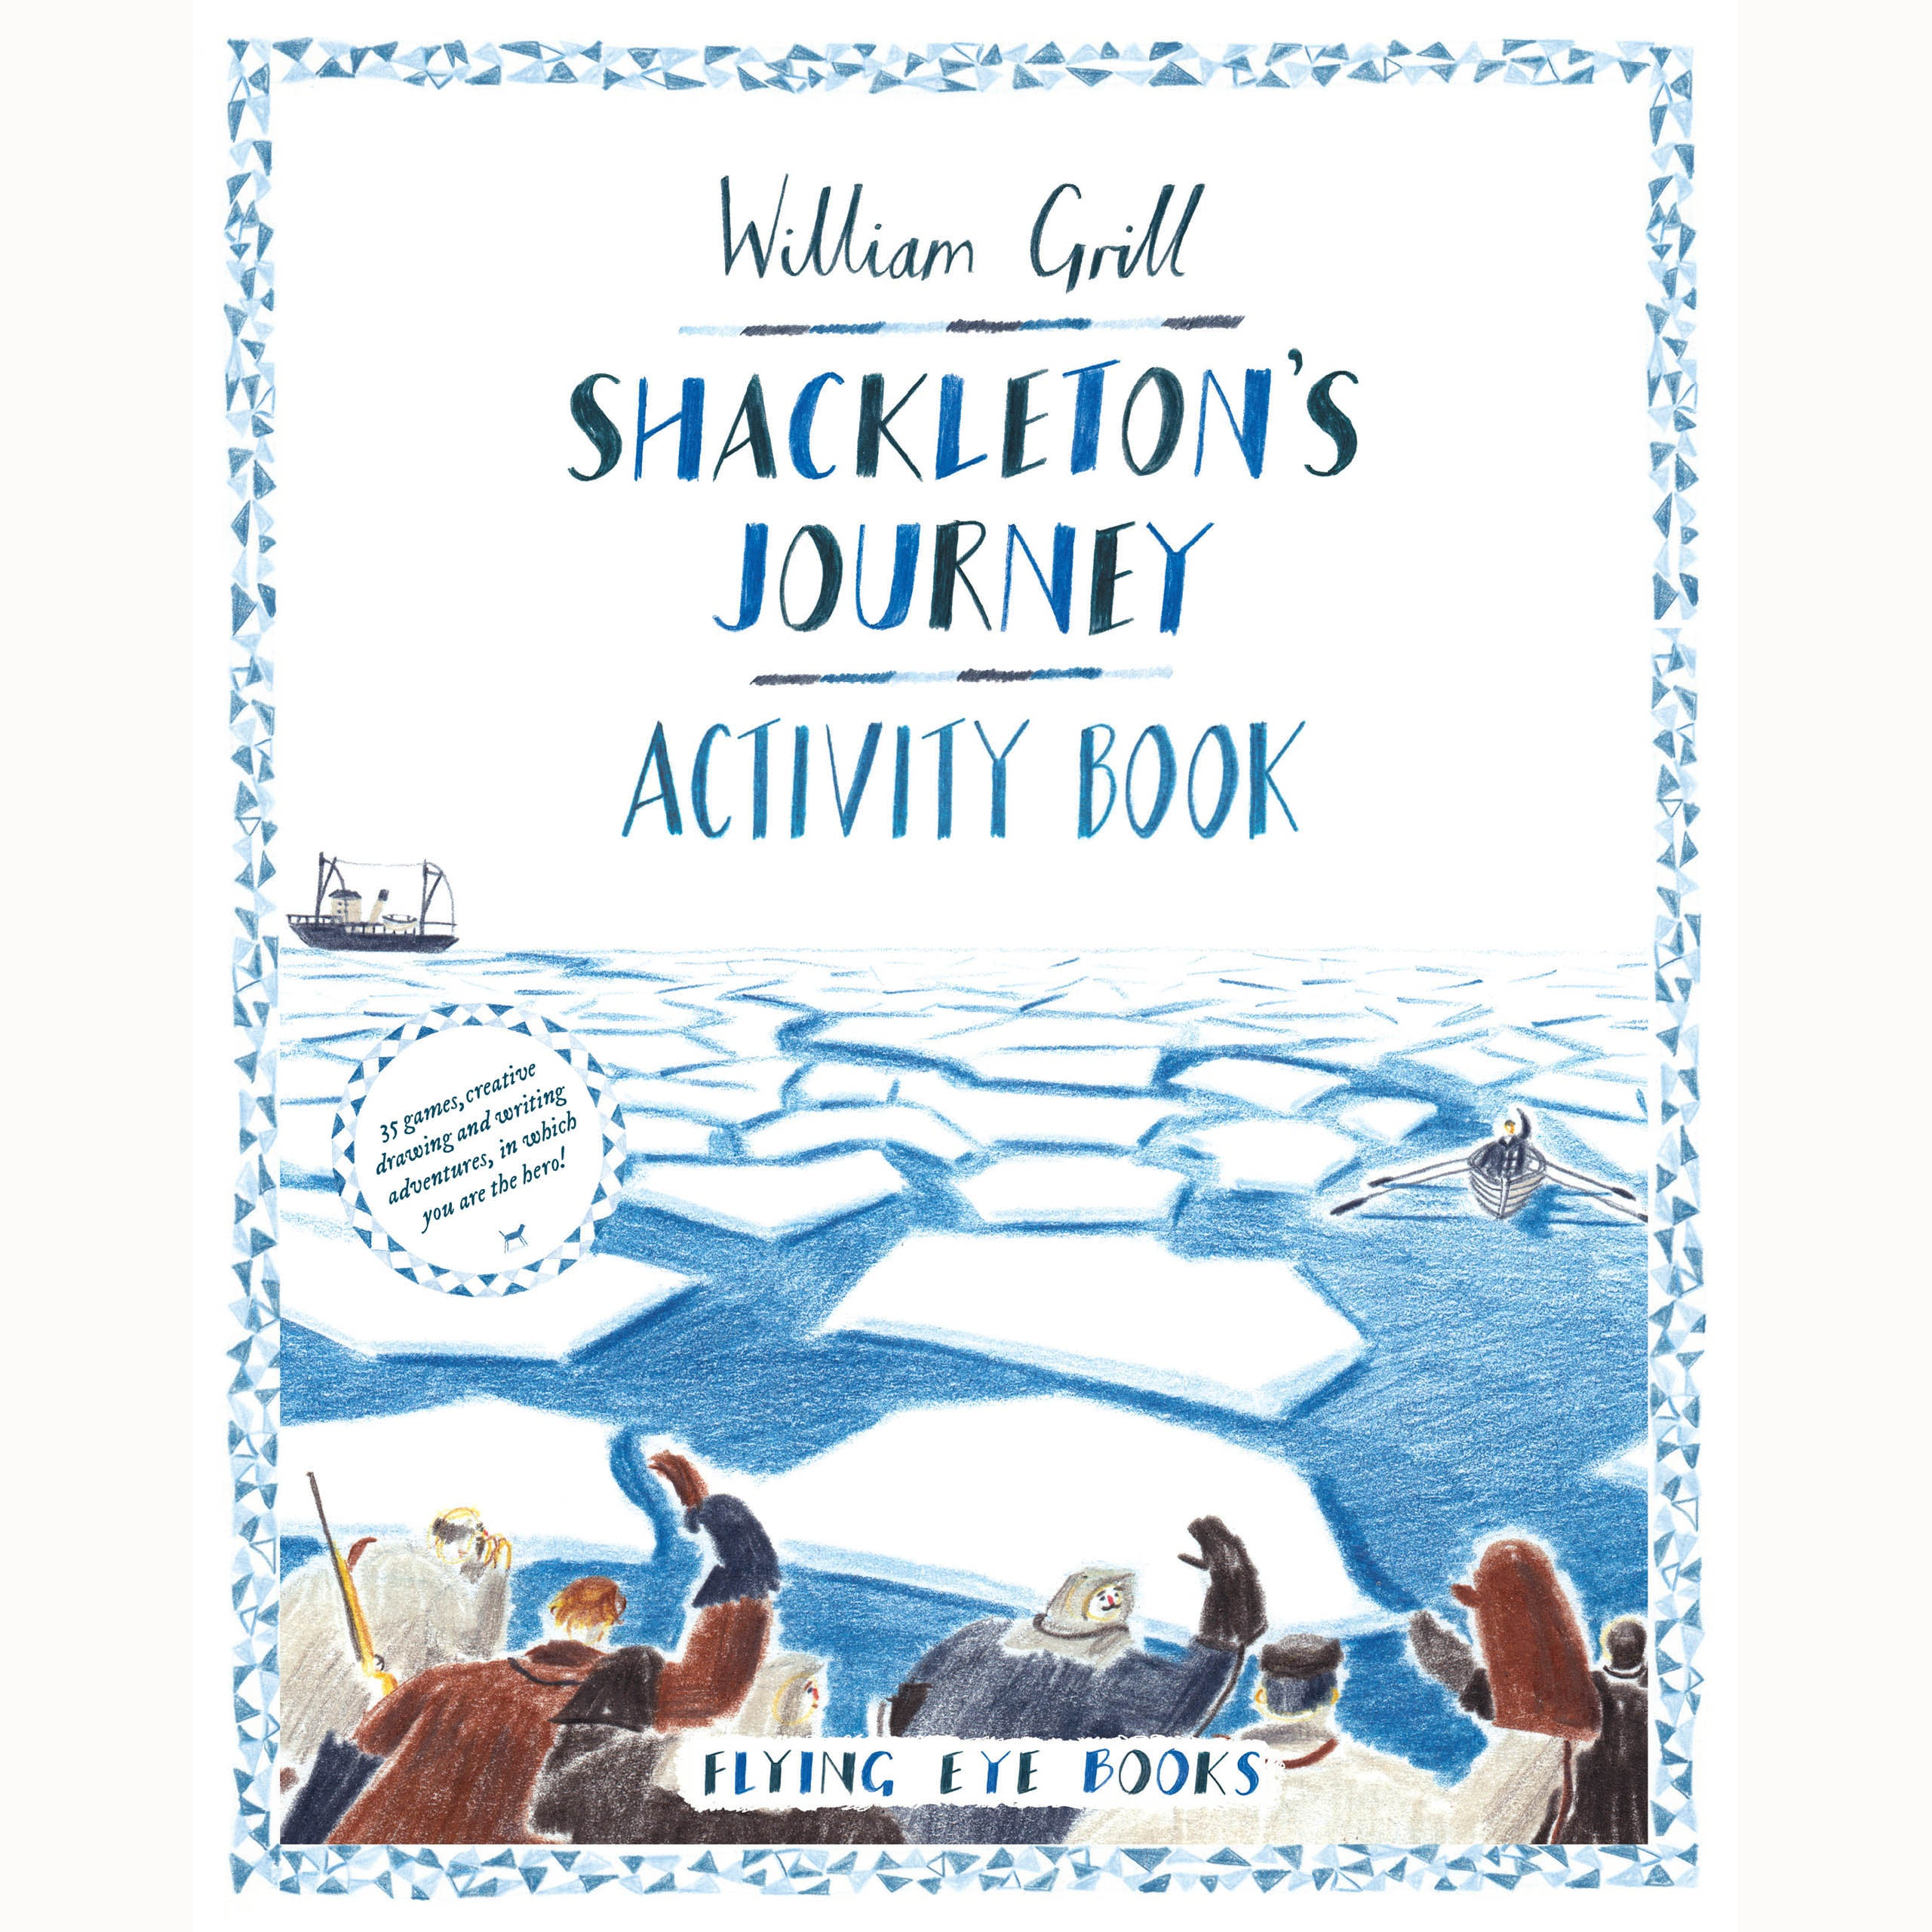 Shackleton's Journey - Activity Book, front cover